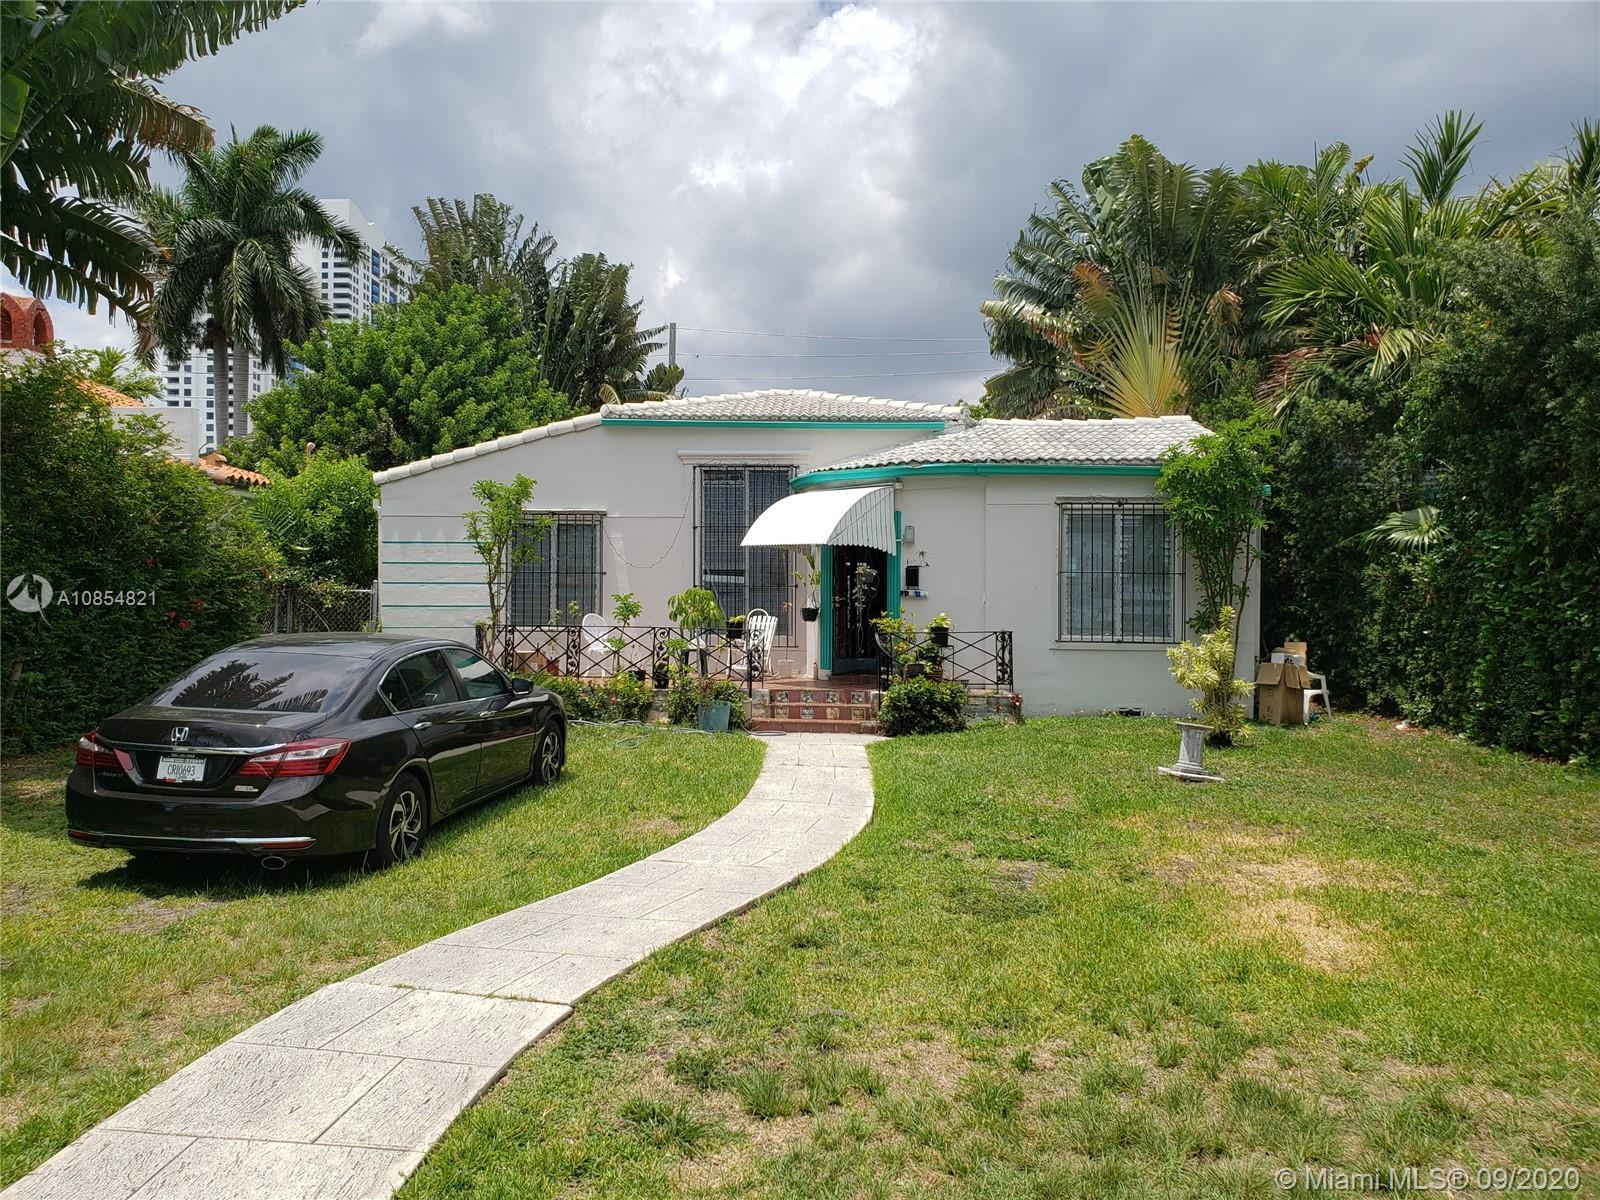 Details for 1426 Lenox Ave, Miami Beach, FL 33139